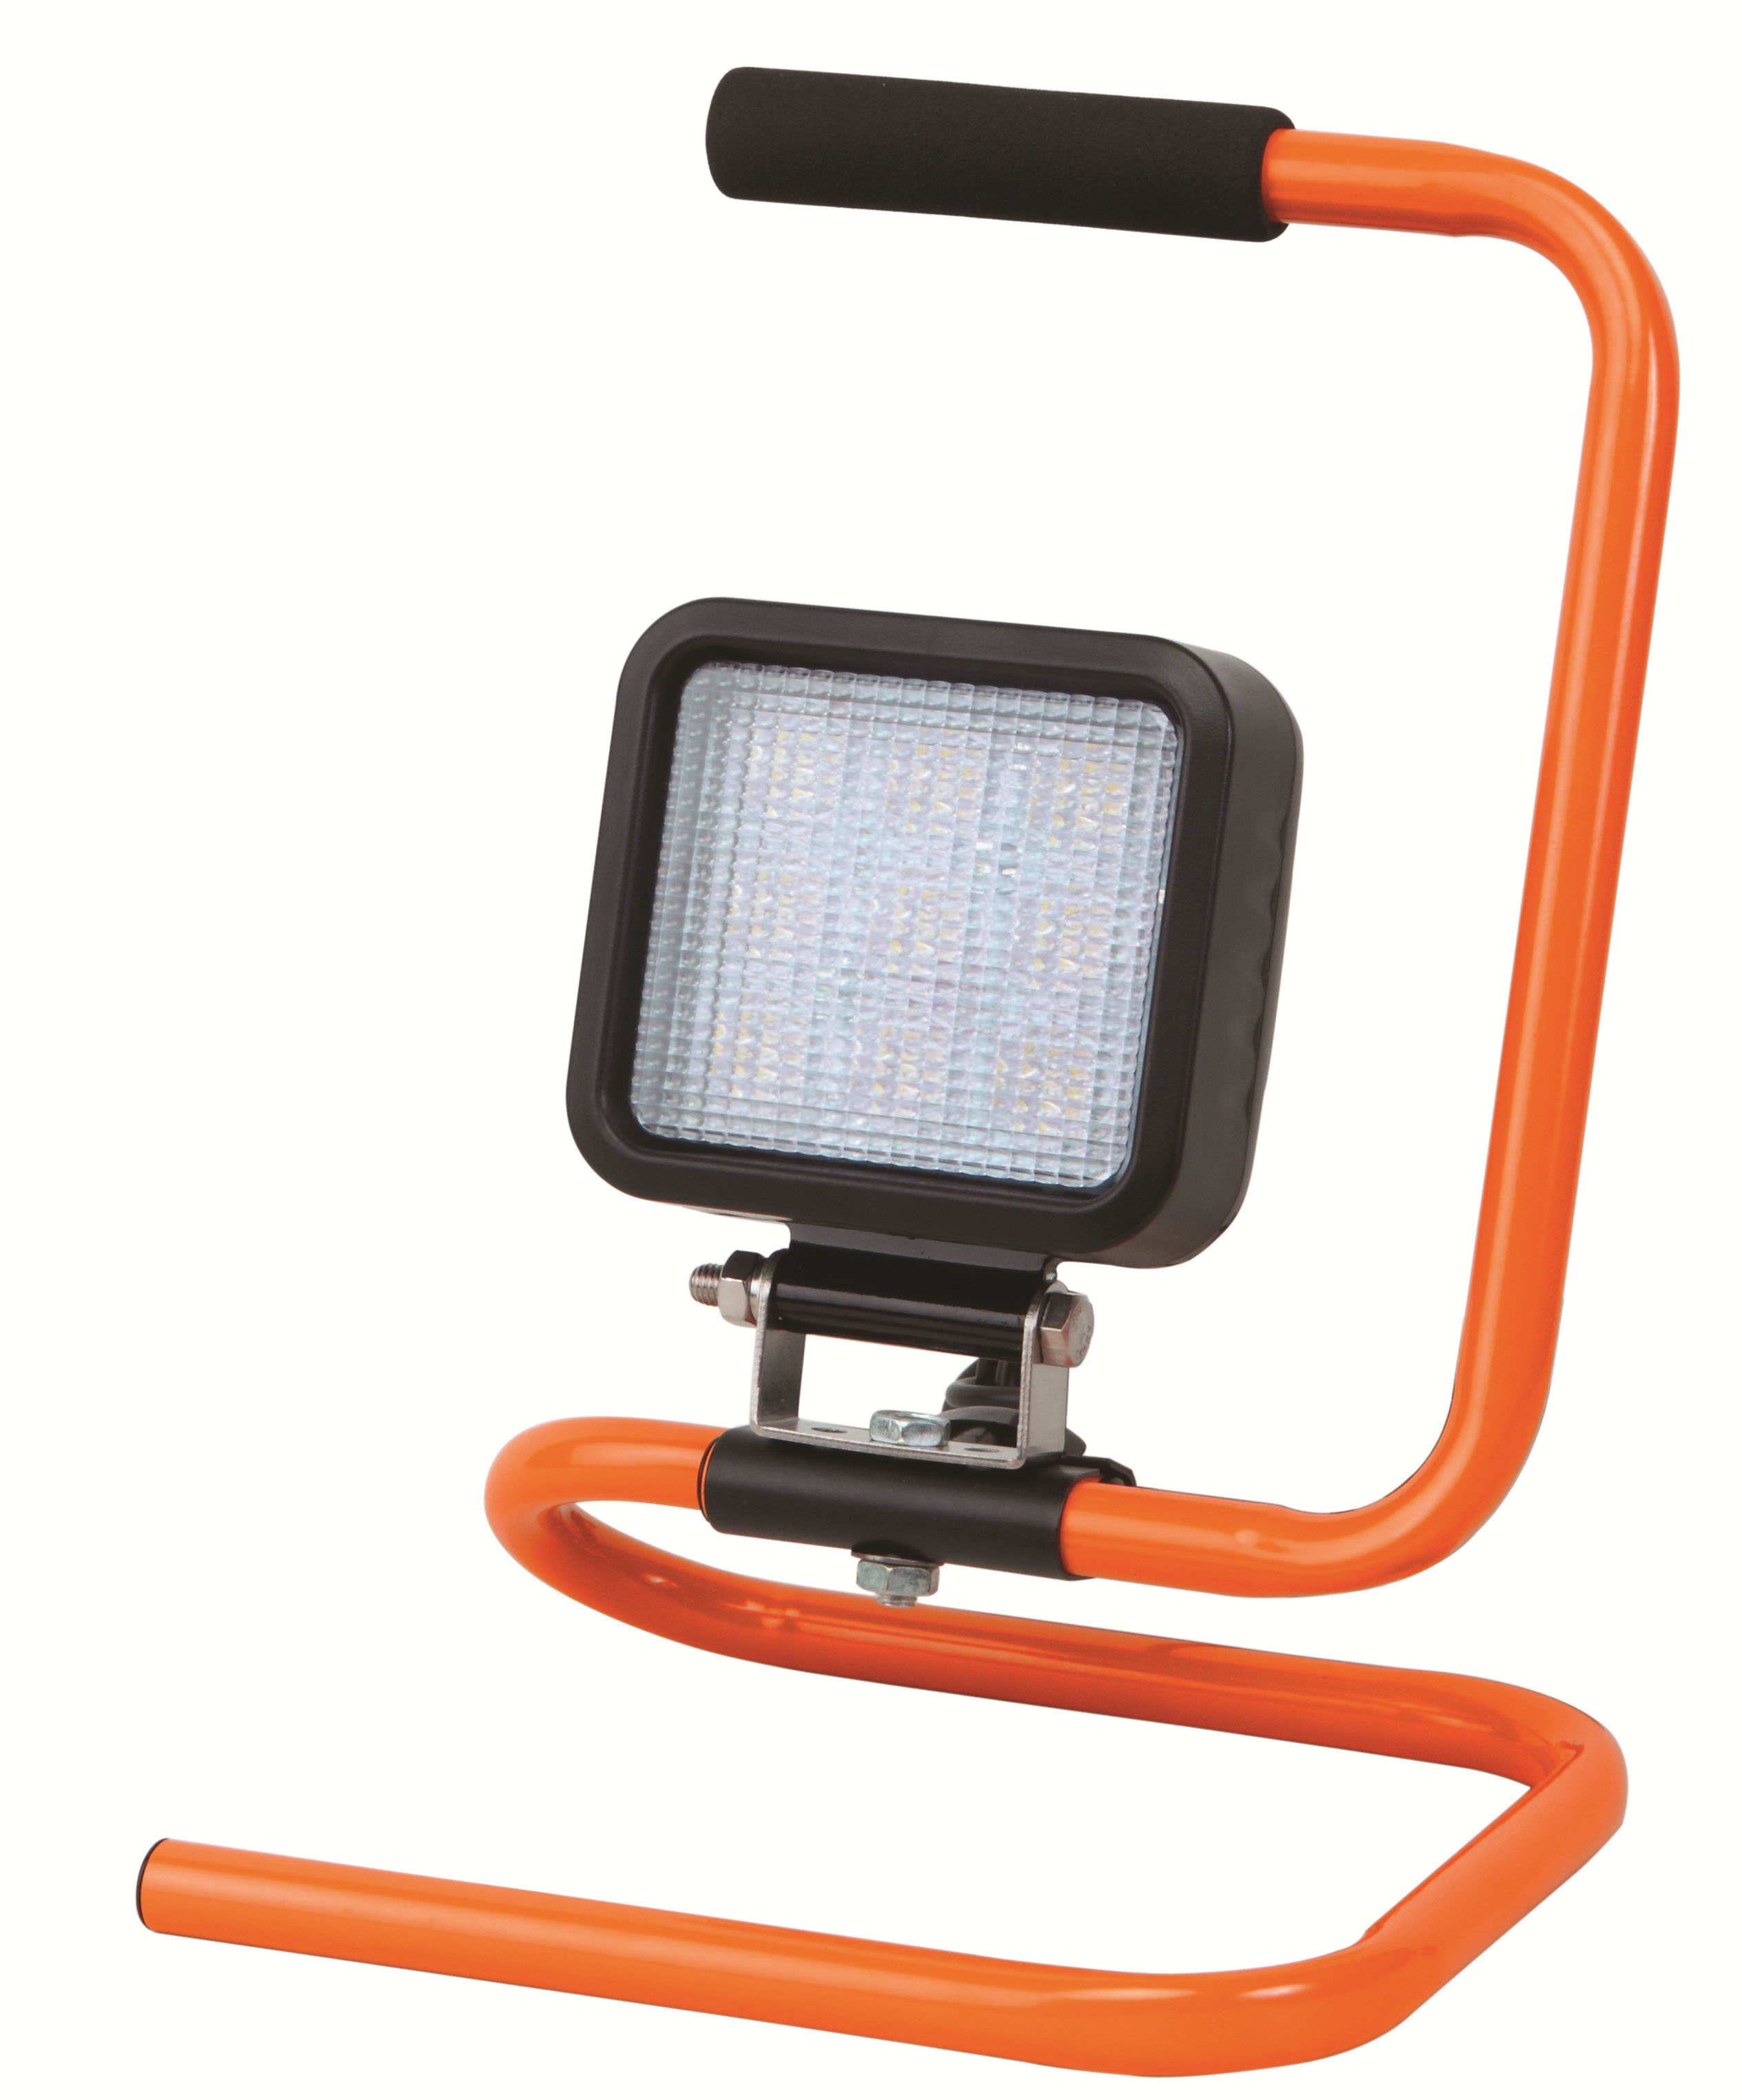 GROZ LED/601 - Portable Lamp w/Stand; 1600 Lumens; 27W